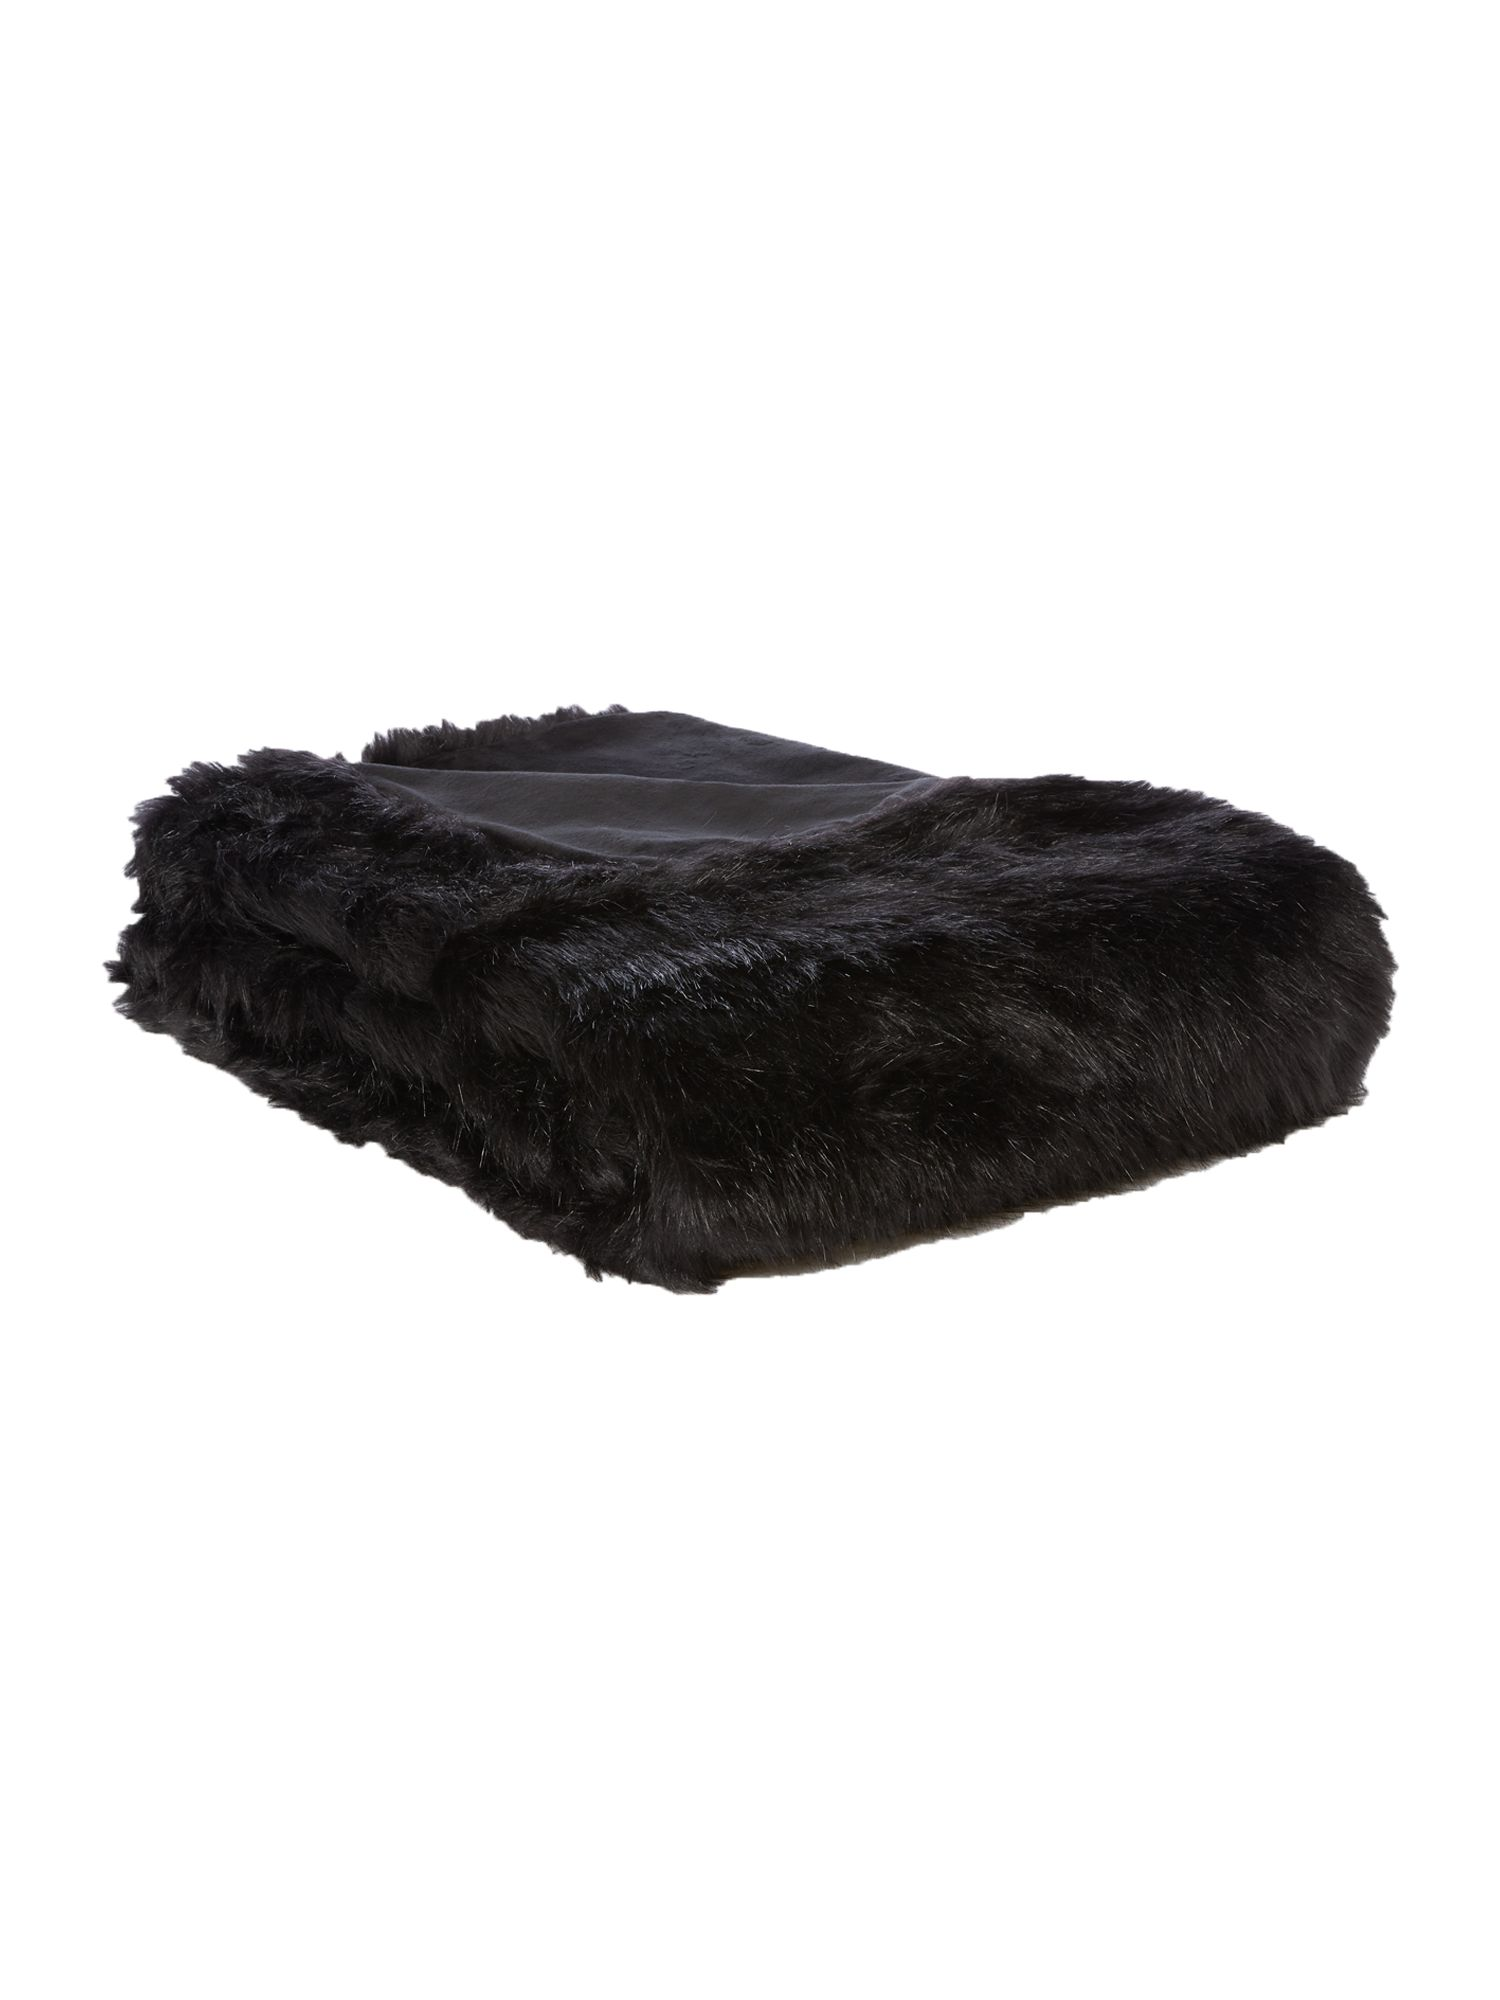 Biba Long black faux fur throw